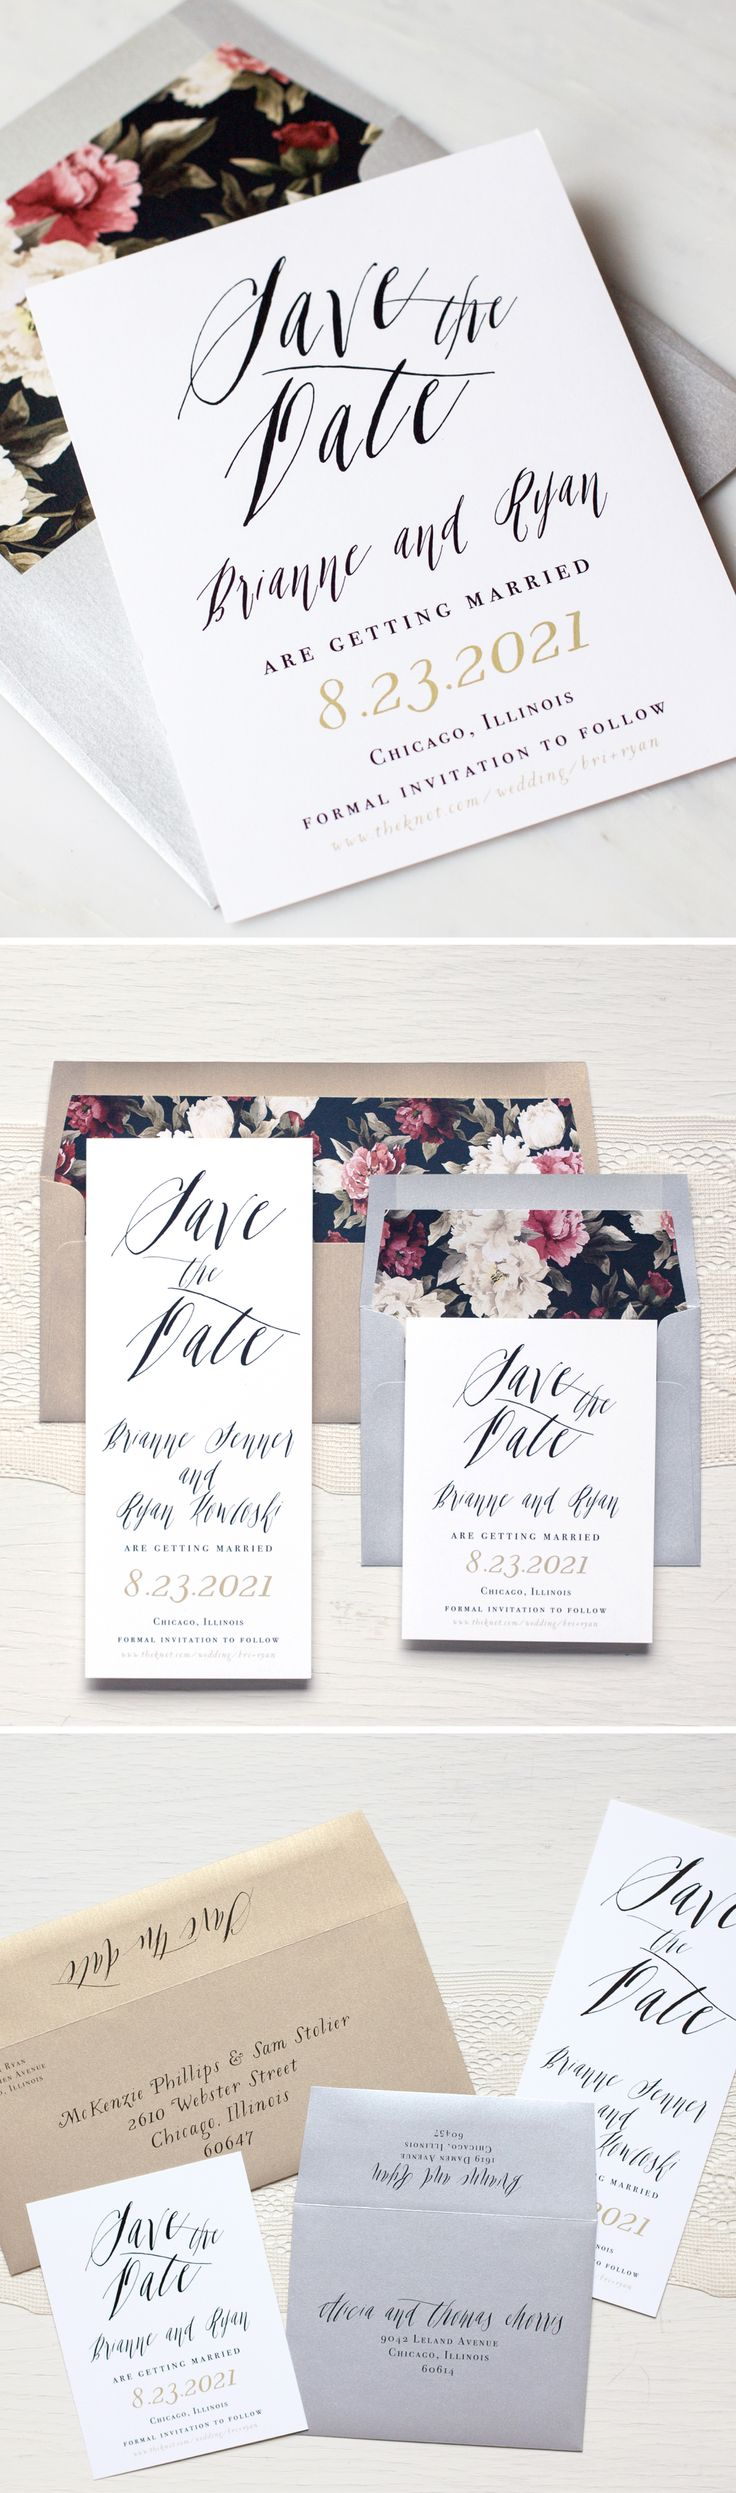 Best 11 Save The Dates Images On Pinterest Bridal Invitations